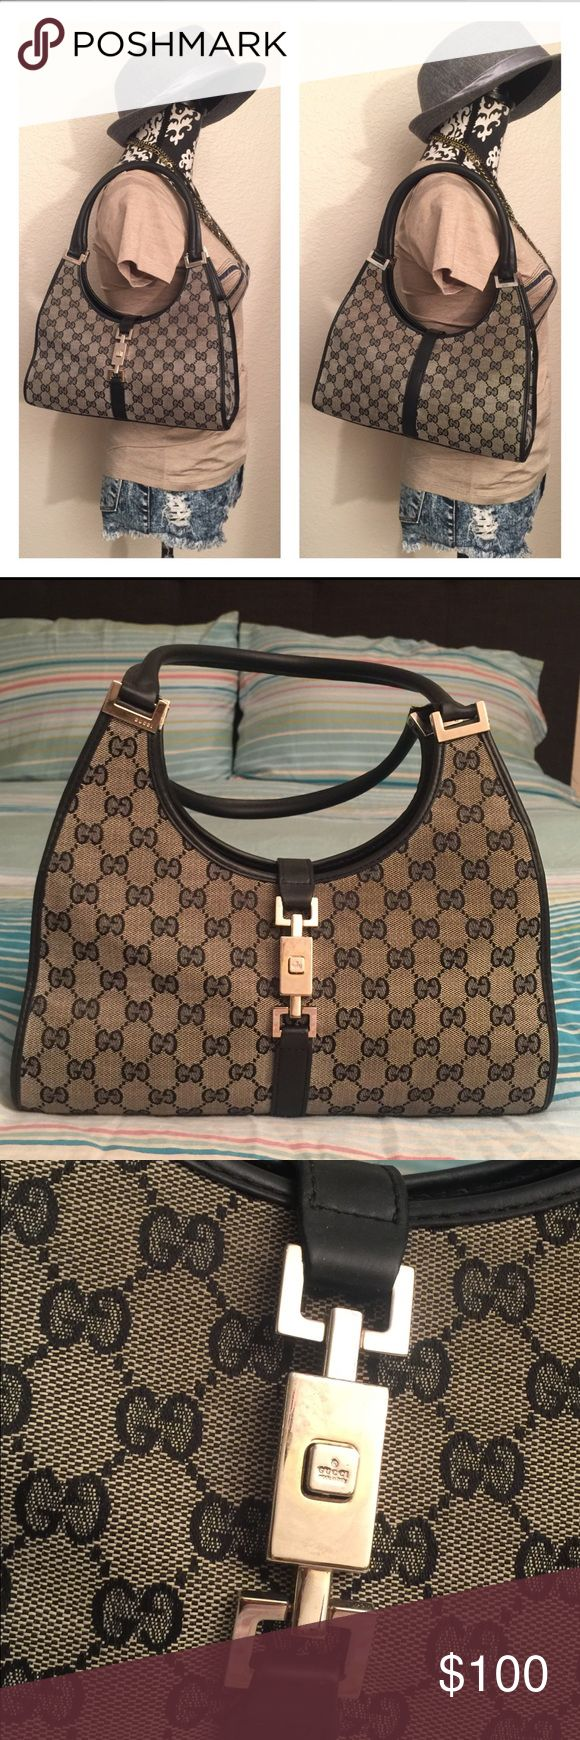 Gucci This is a very well loved vintage Gucci Bardot monogram handbag that is grey and black canvas with black leather trim and handles with push lock closure on the front.Inside.Inside is black lining with gucci print and with zippered pocket with gucci made in italy name plate. PRICE REFLECTS CONDITION OF THE ITEM. Has tons of life left.. NEEDS TLC Gucci Bags